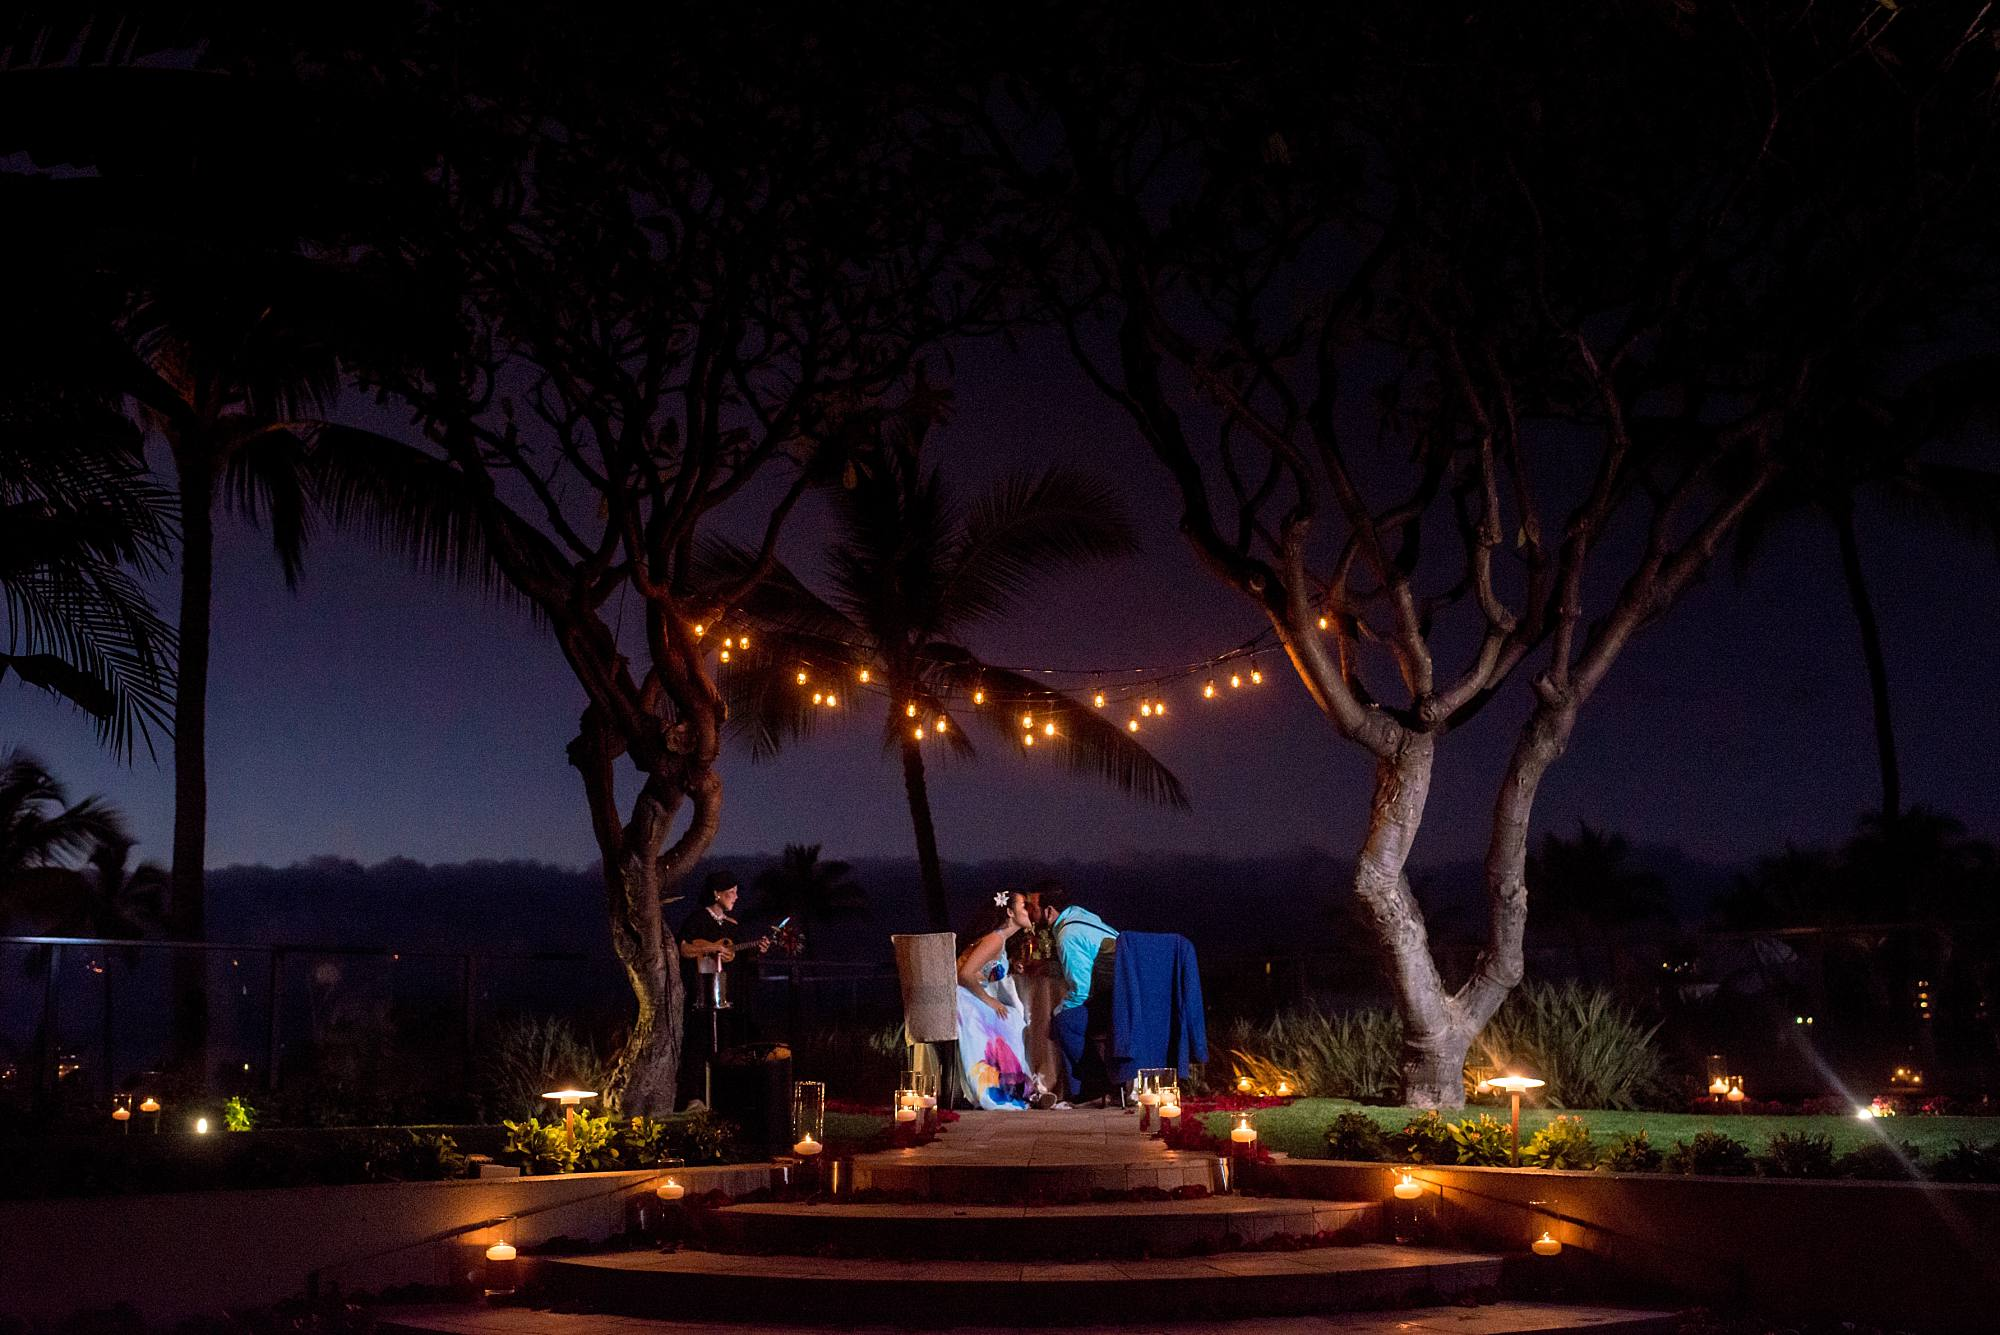 couple kissing at romantic dinner outdoors under the light